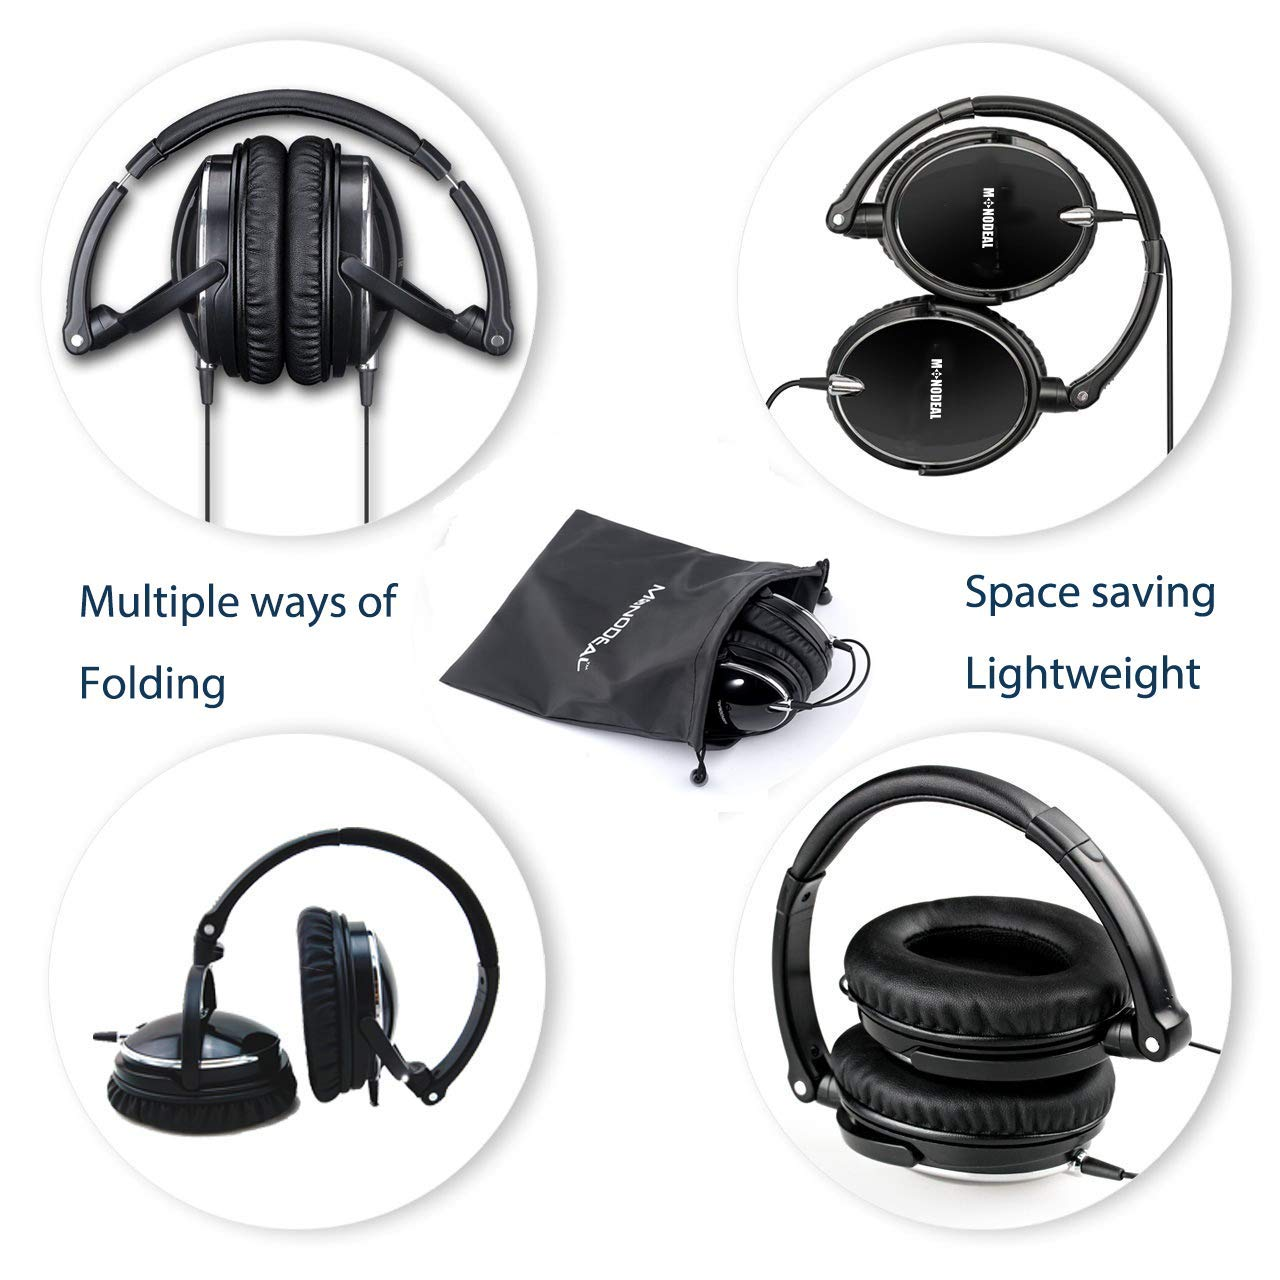 Active Noise Cancelling Headphones with Mic, MonoDeal Overhead Strong Bass Earphones, Folding and Lightweight Travel Headset with Carrying Case - Black …